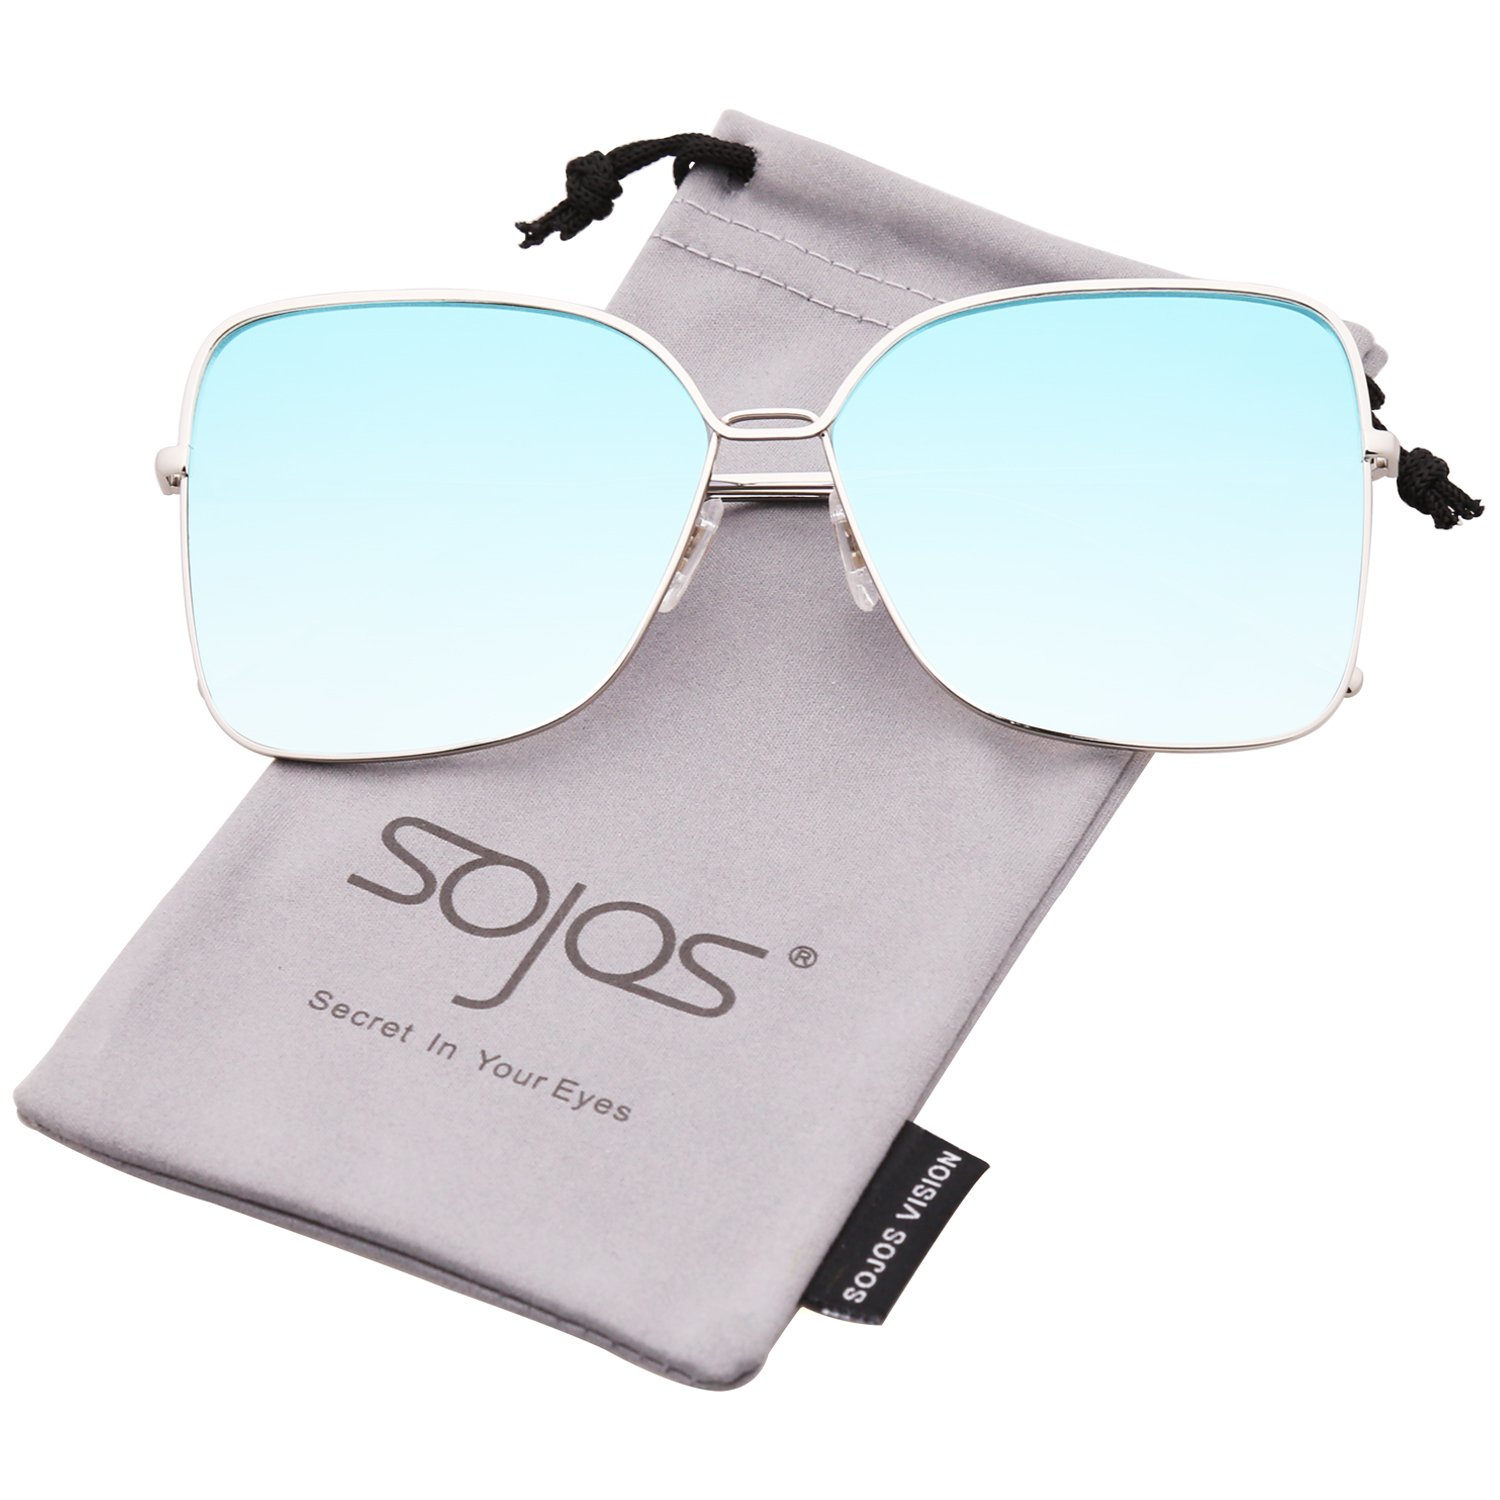 SOJOS Fashion Oversized Women Sunglasses Square Frame Flat Mirrored Lens SJ1082 with Silver Frame/Blue Mirrored Lens